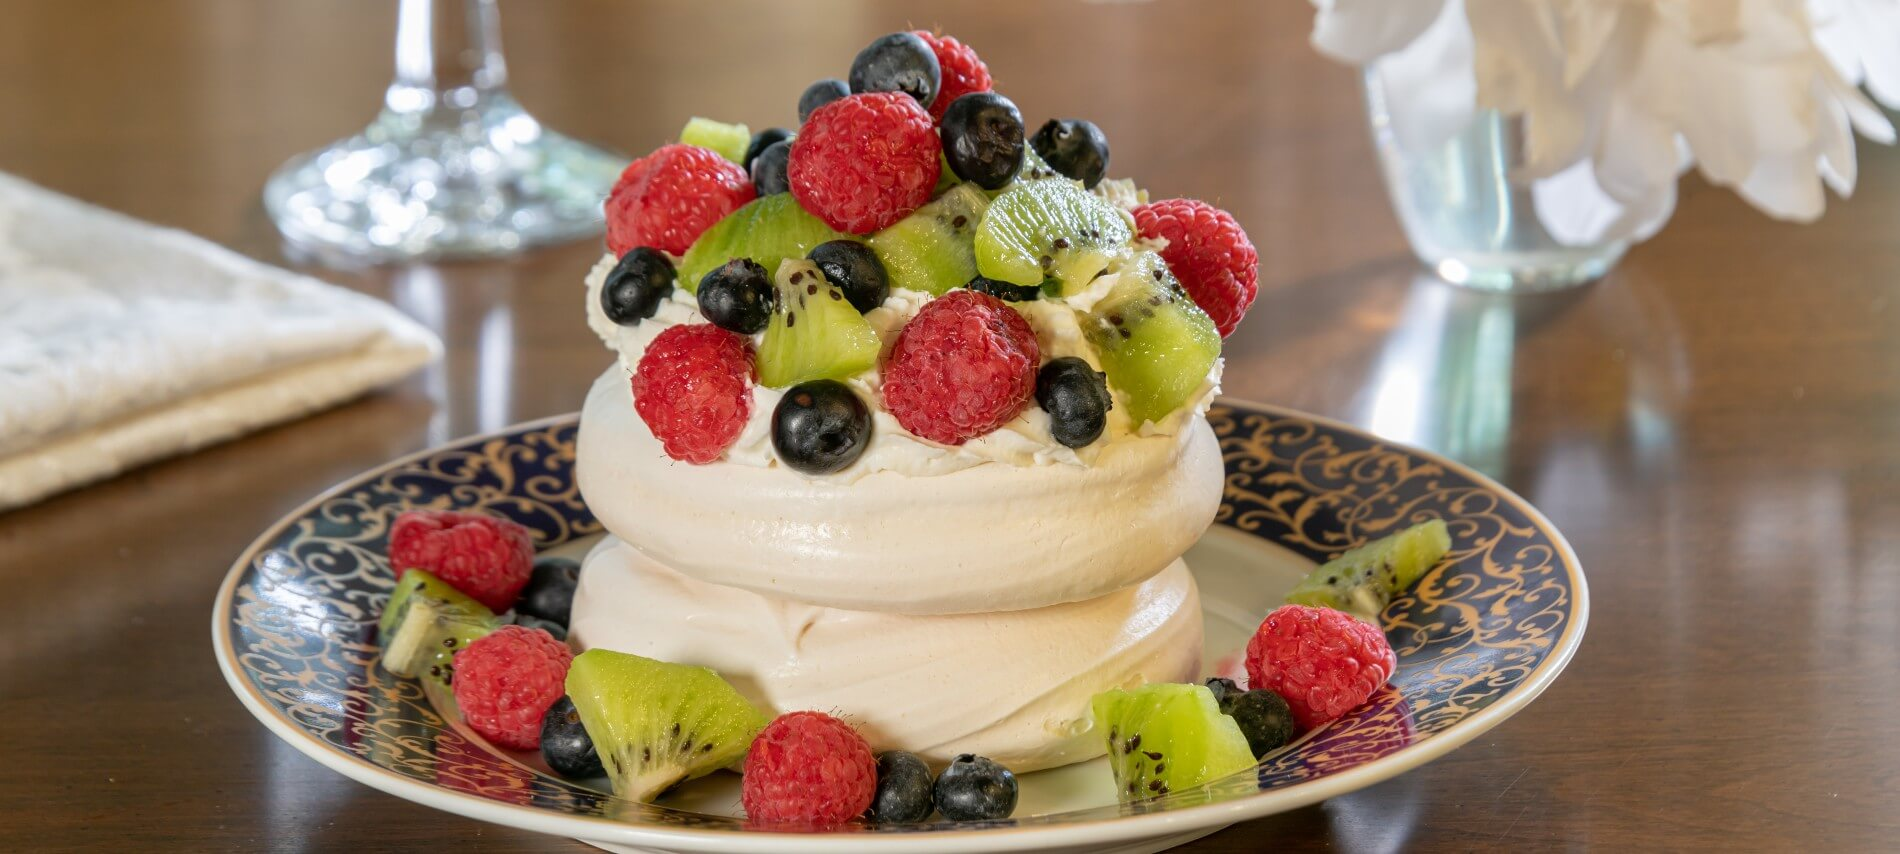 fruit, whipped cream and meringue on a plate